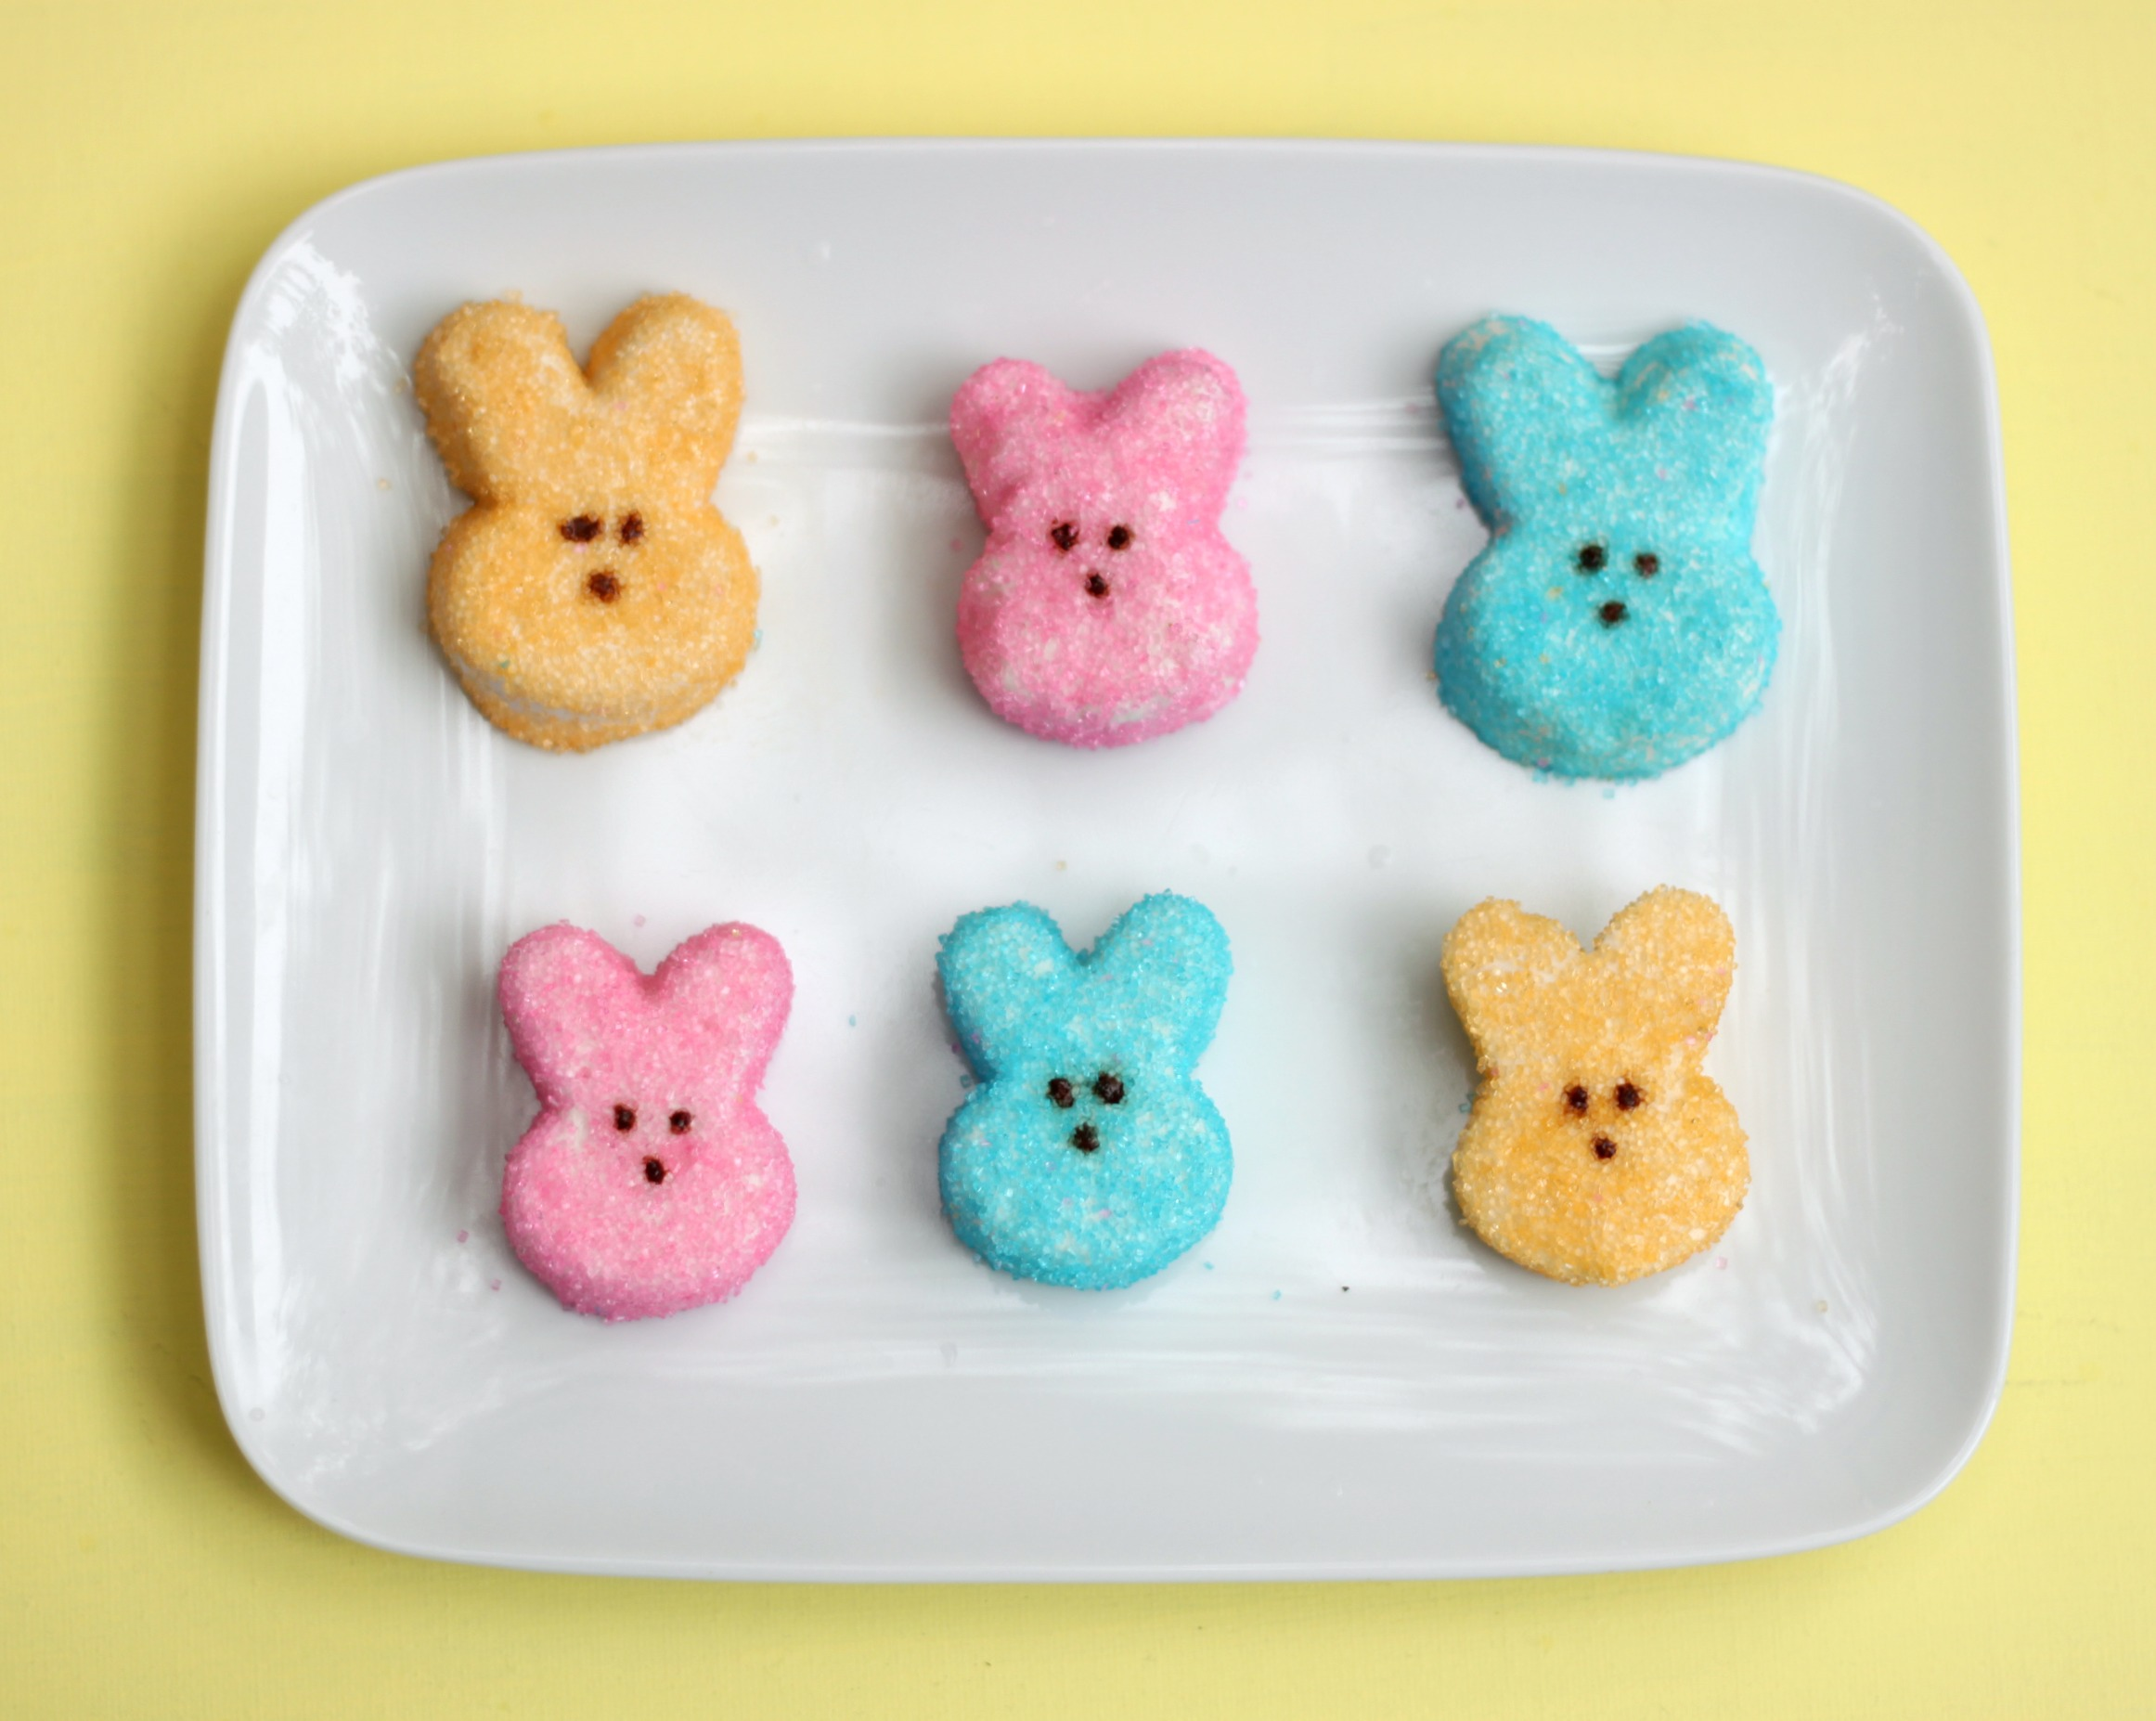 Homemade marshmallow peeps yellow pink blue